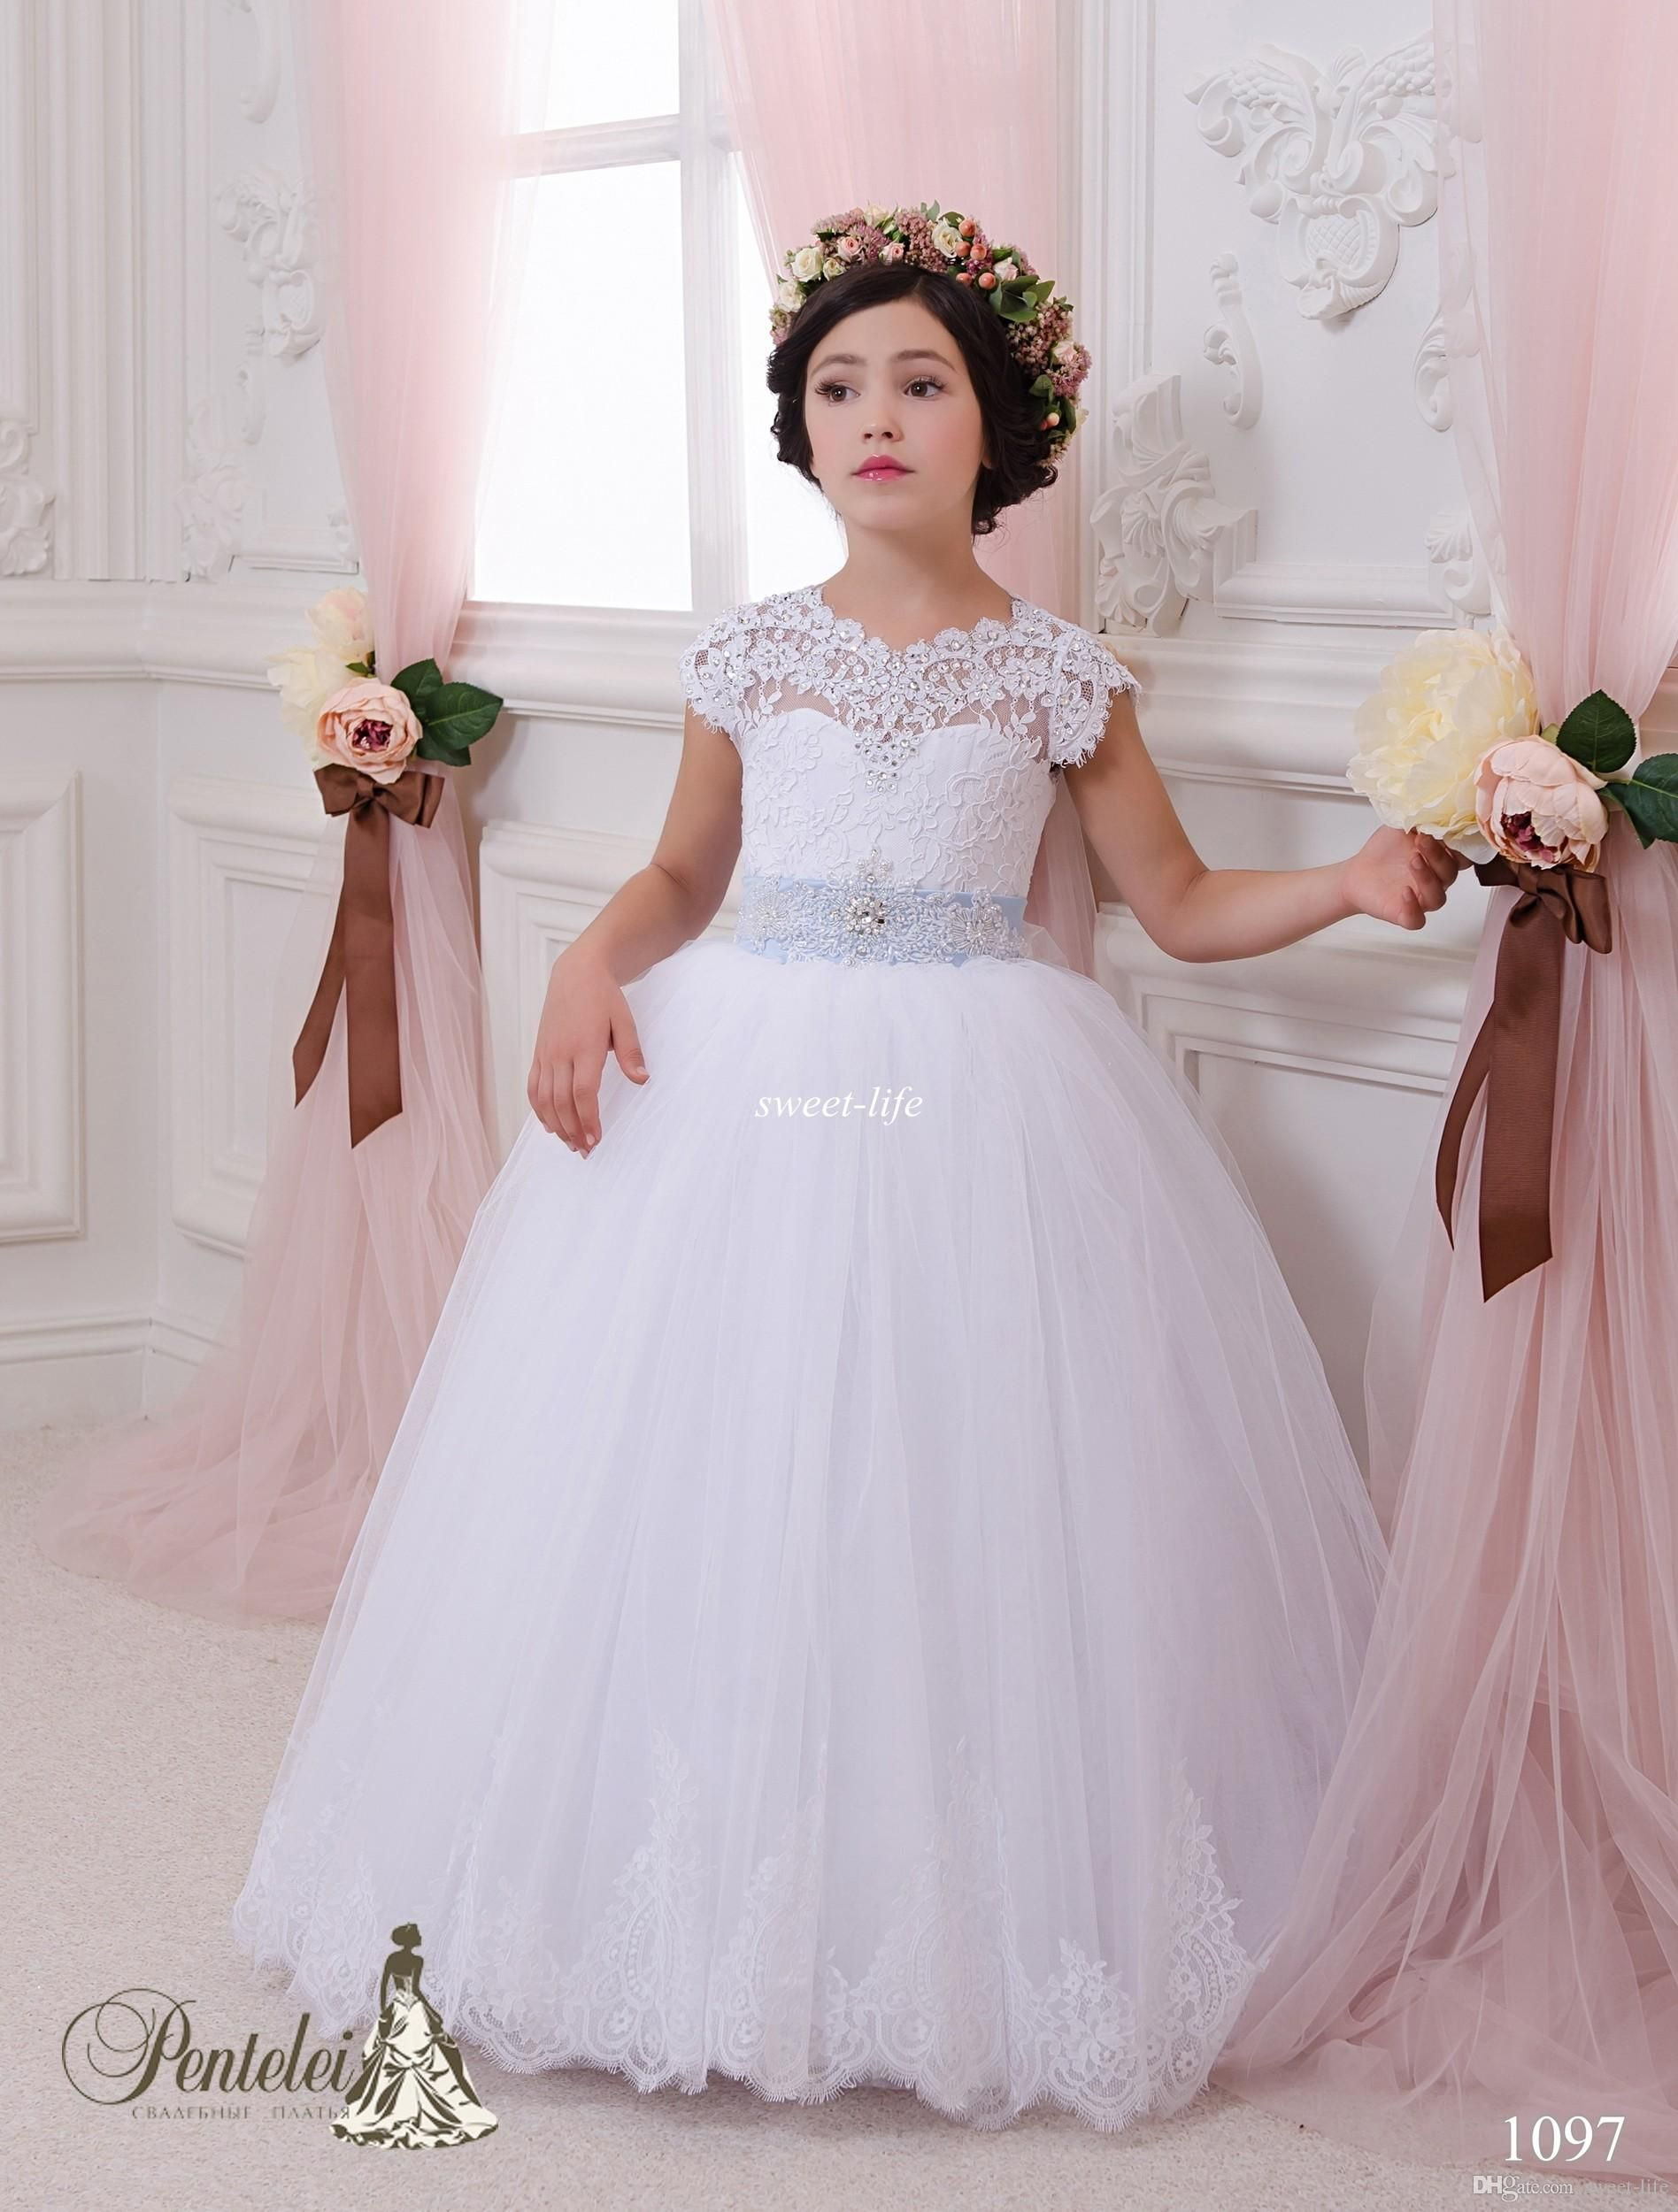 Lace ball gown flower girl dresses 2015 cheap sky blue sash floor lace ball gown flower girl dresses 2015 cheap sky blue sash floor length keyhole back wedding party communion kids gowns girls pageant dress izmirmasajfo